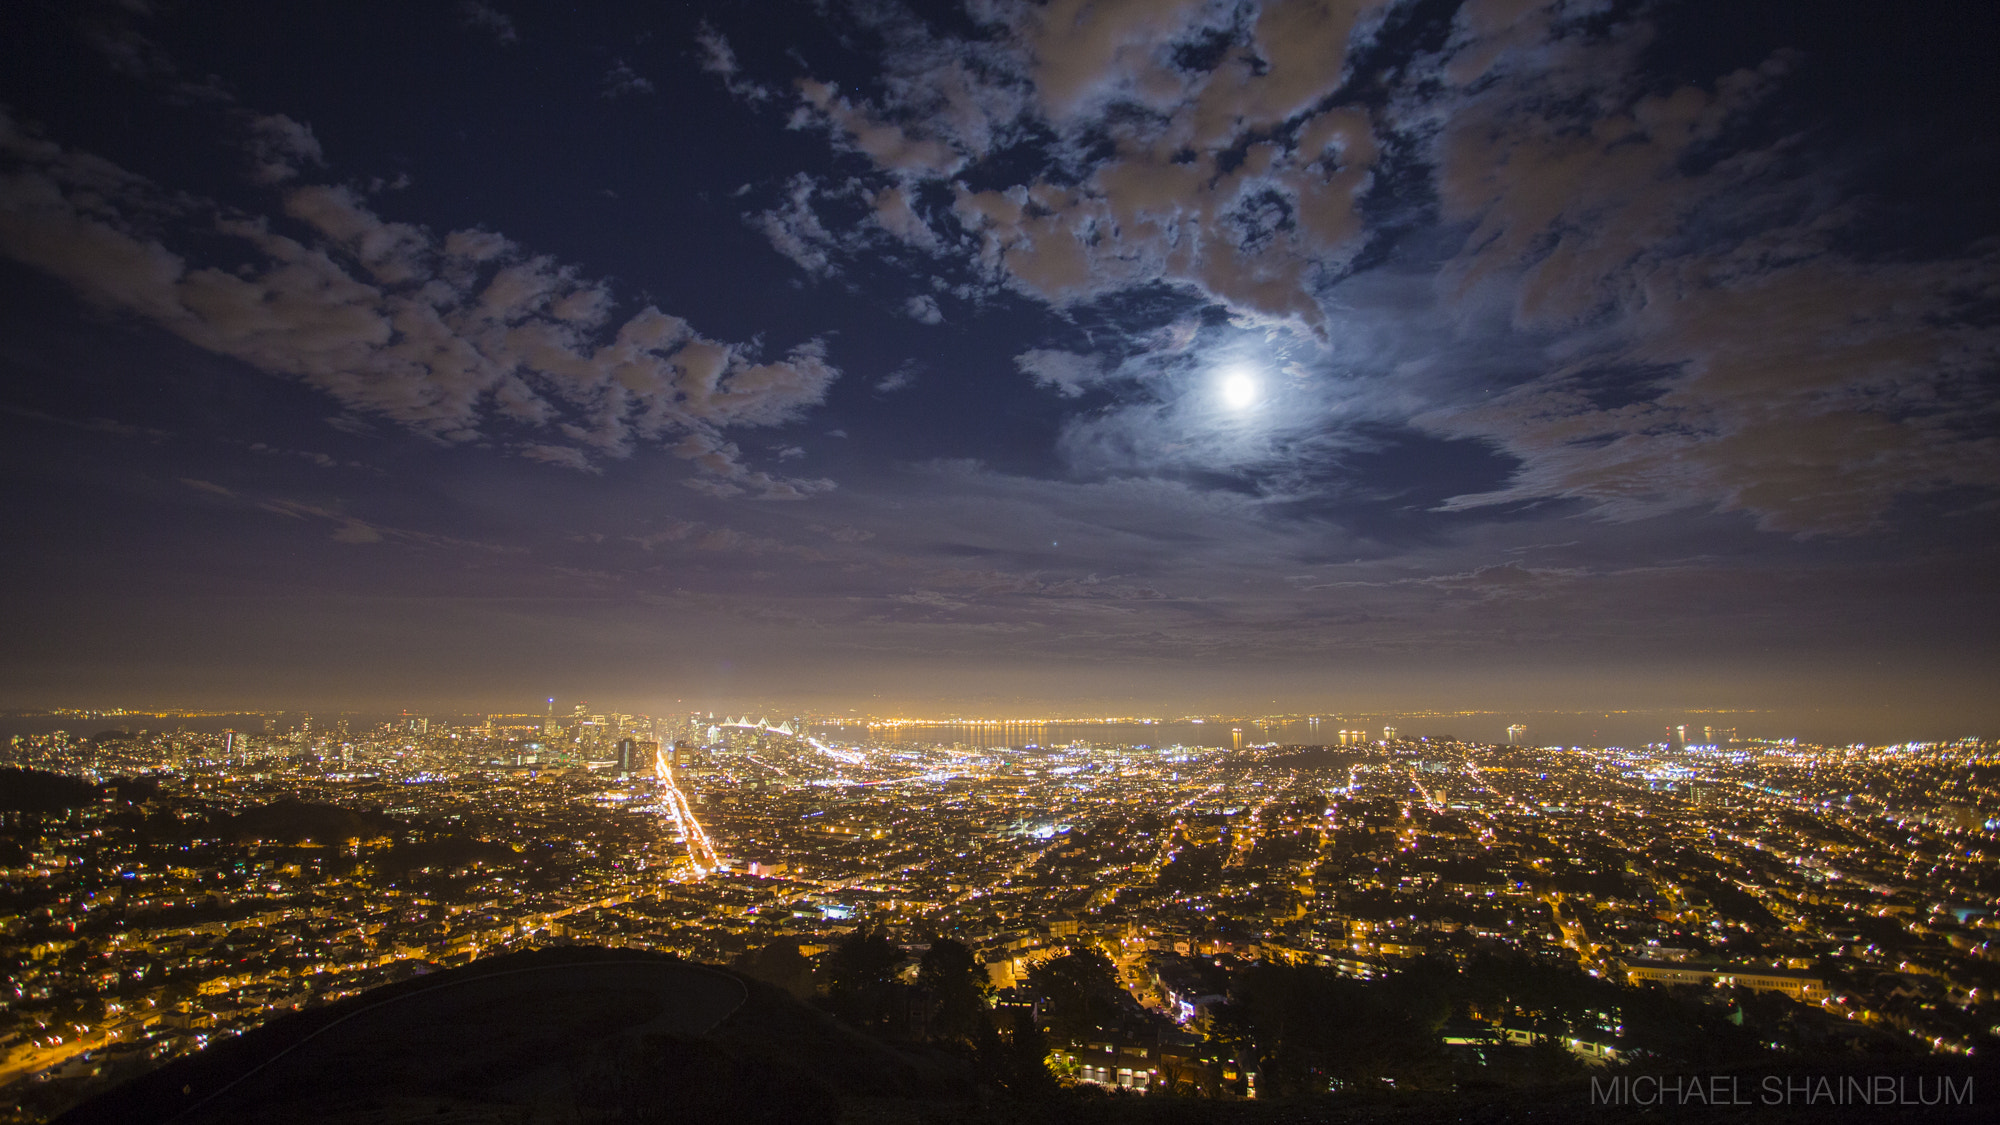 Photograph Moonrise Over San Francisco by Michael Shainblum on 500px